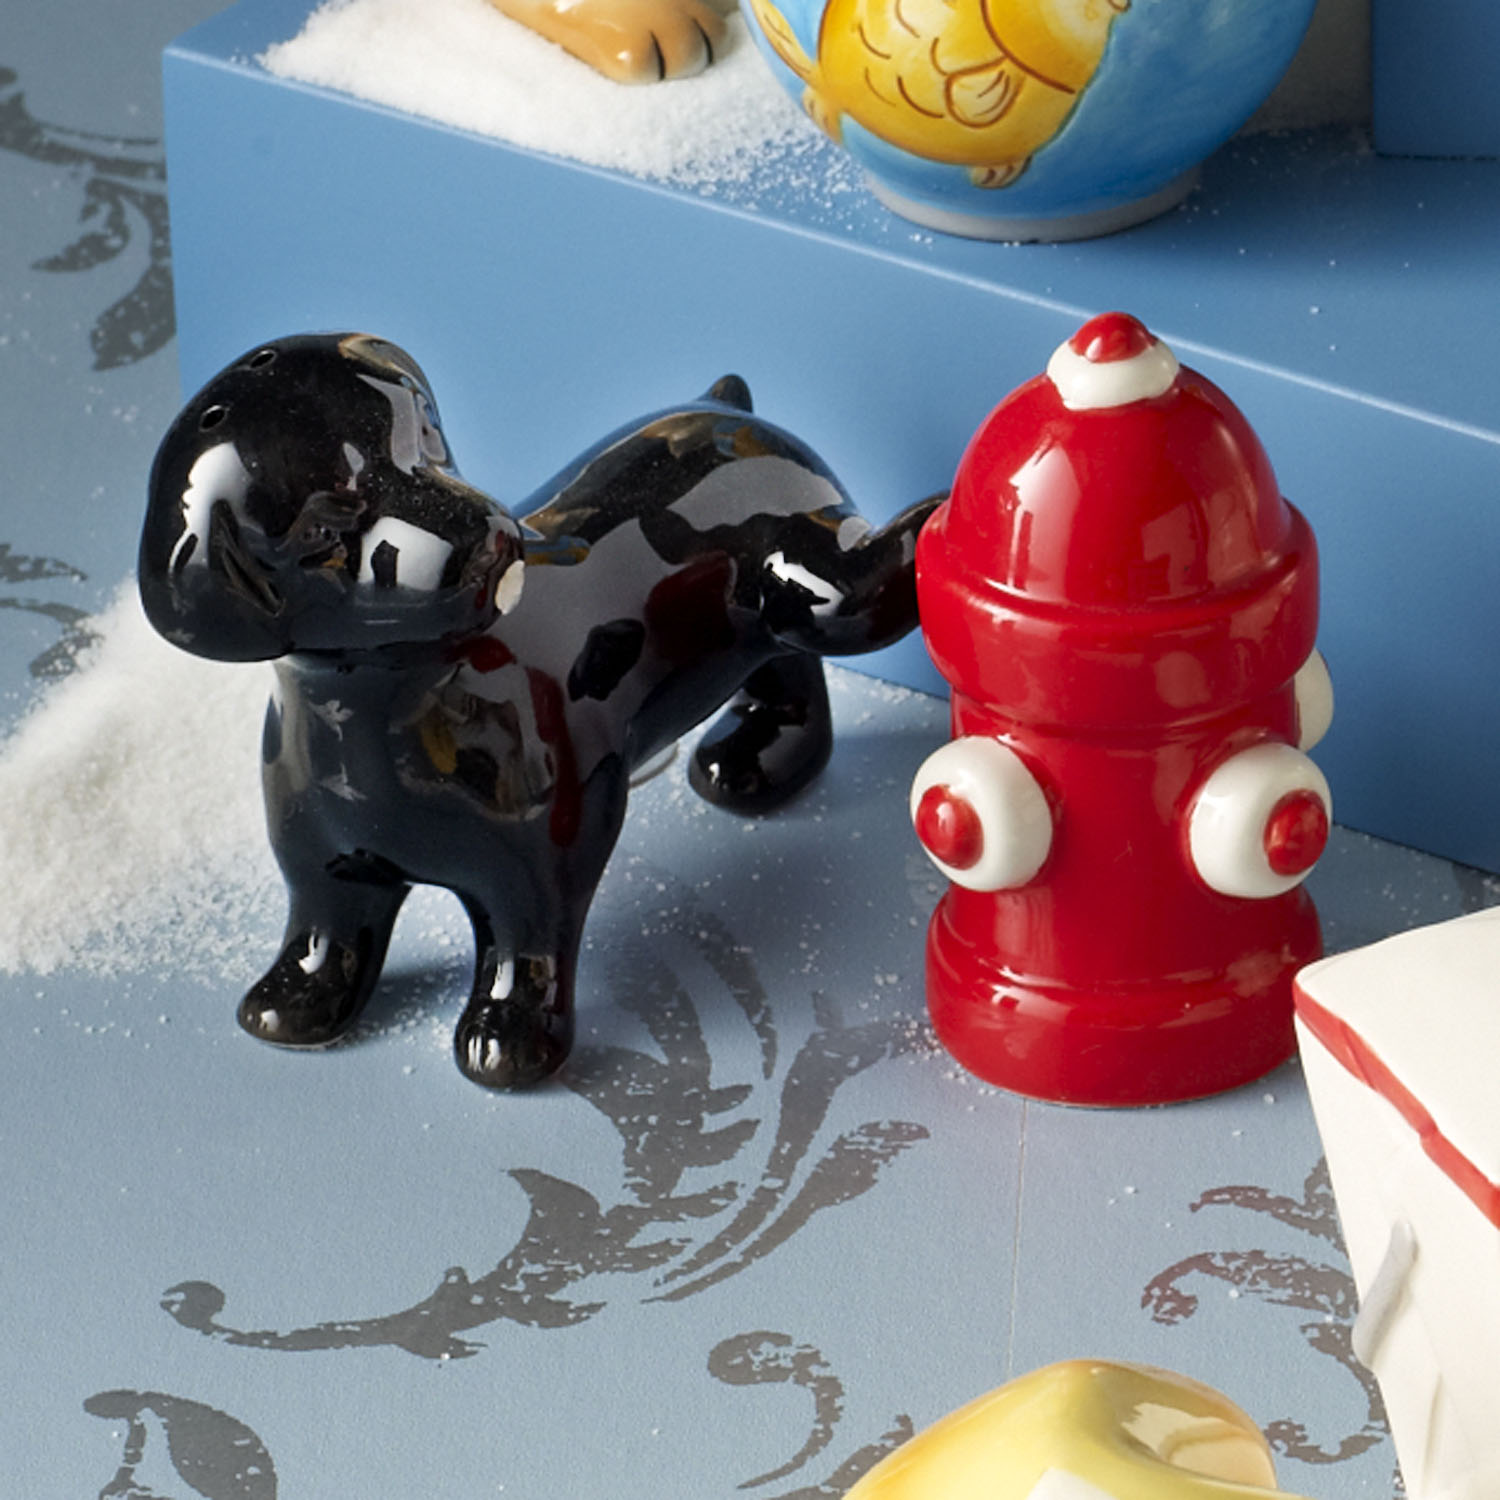 Dog & Fire Hydrant Salt & Pepper Shakers